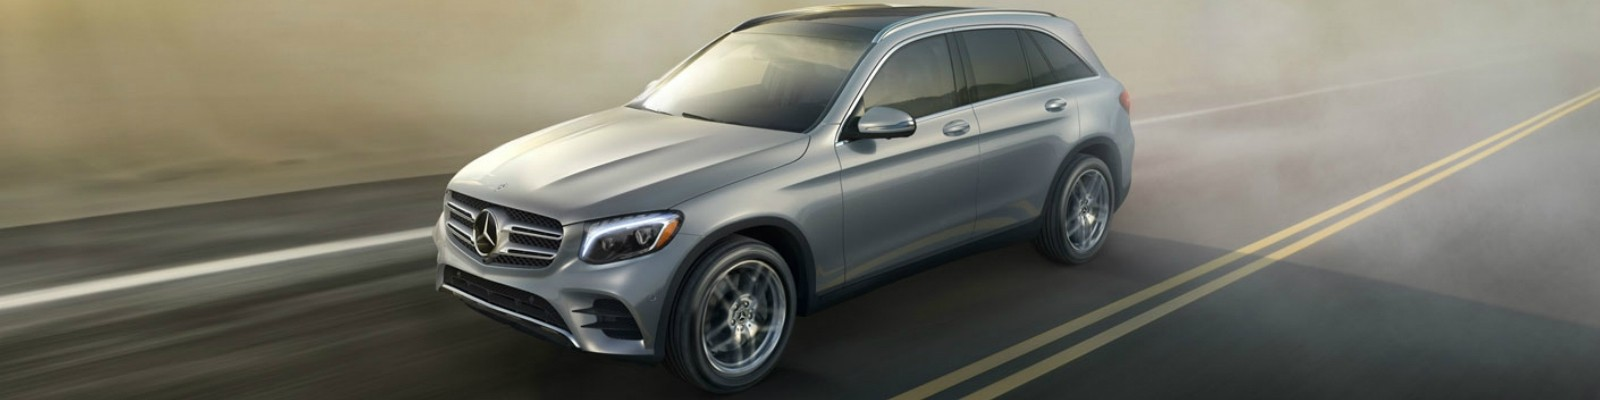 120566-Walters-Automotive-2018-GLC-SUV-top